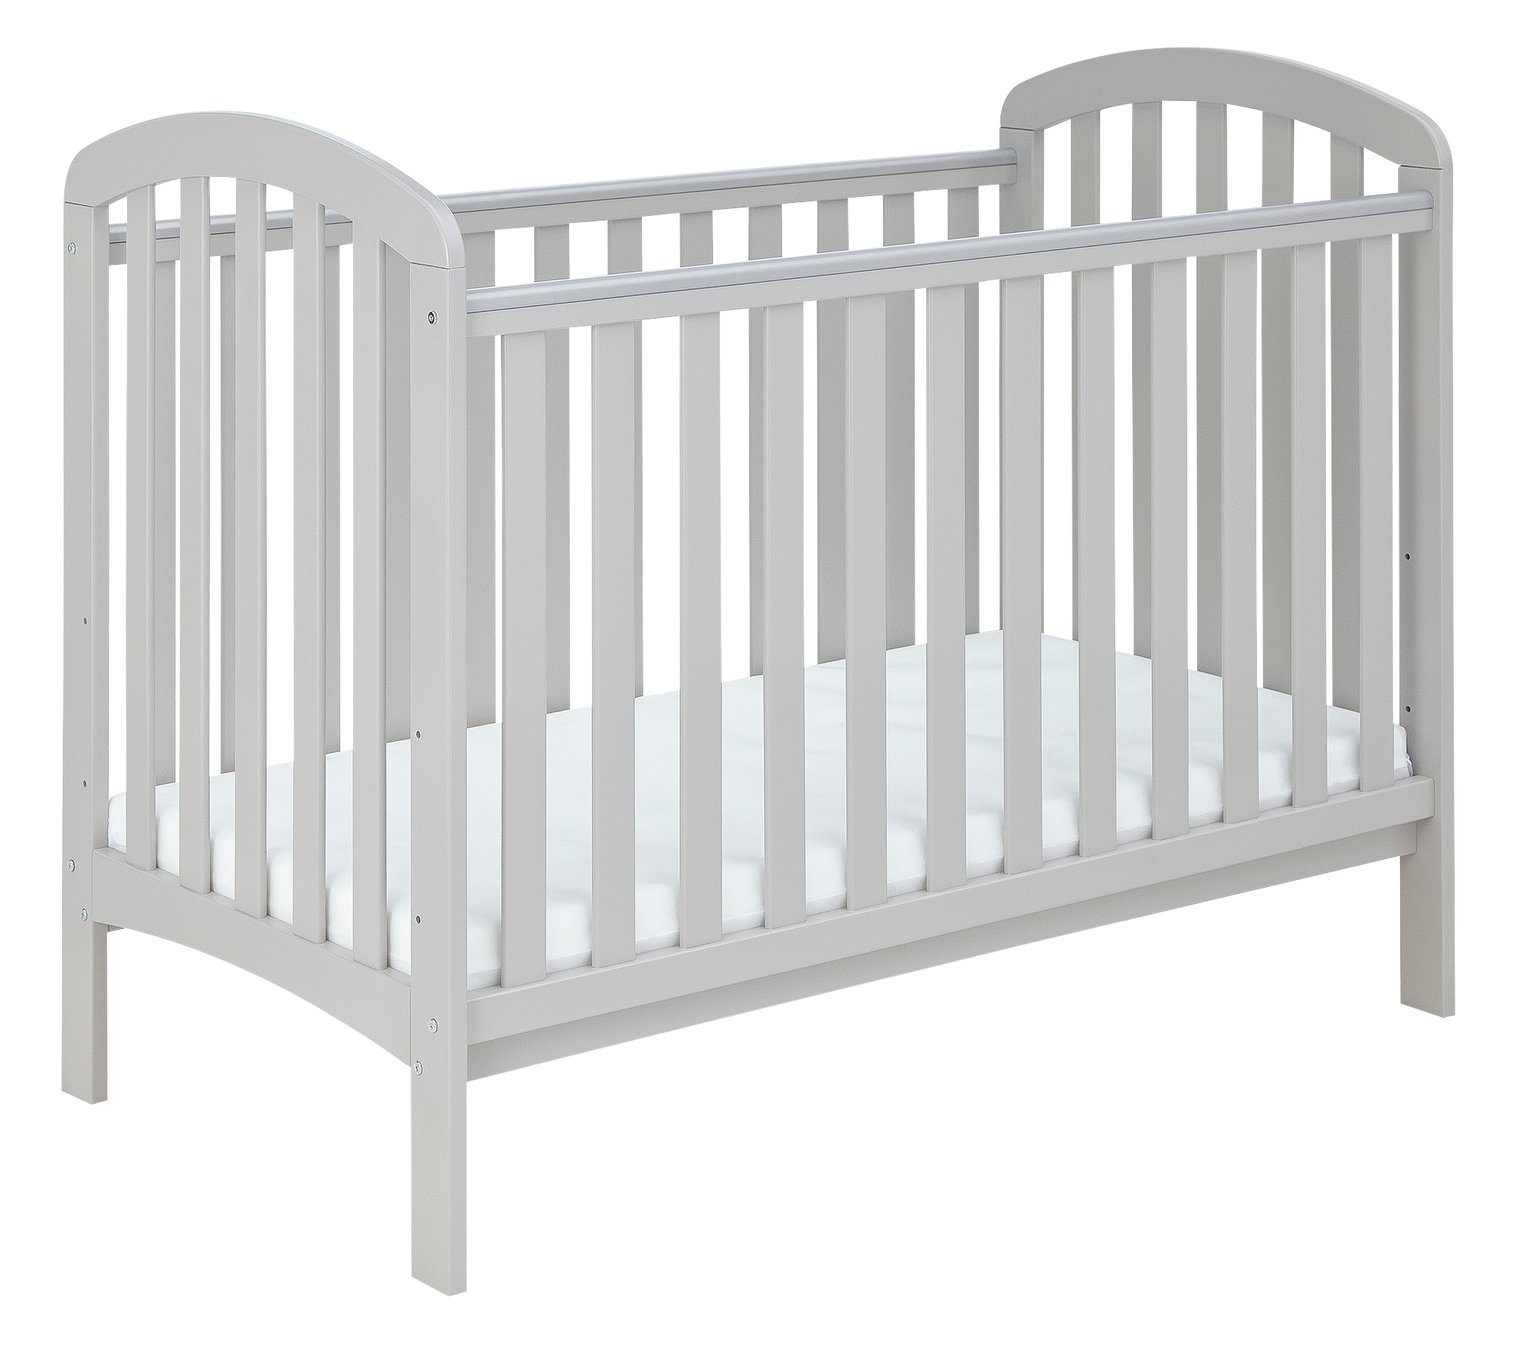 Cuggl Austin Cot with Changer Top - Grey